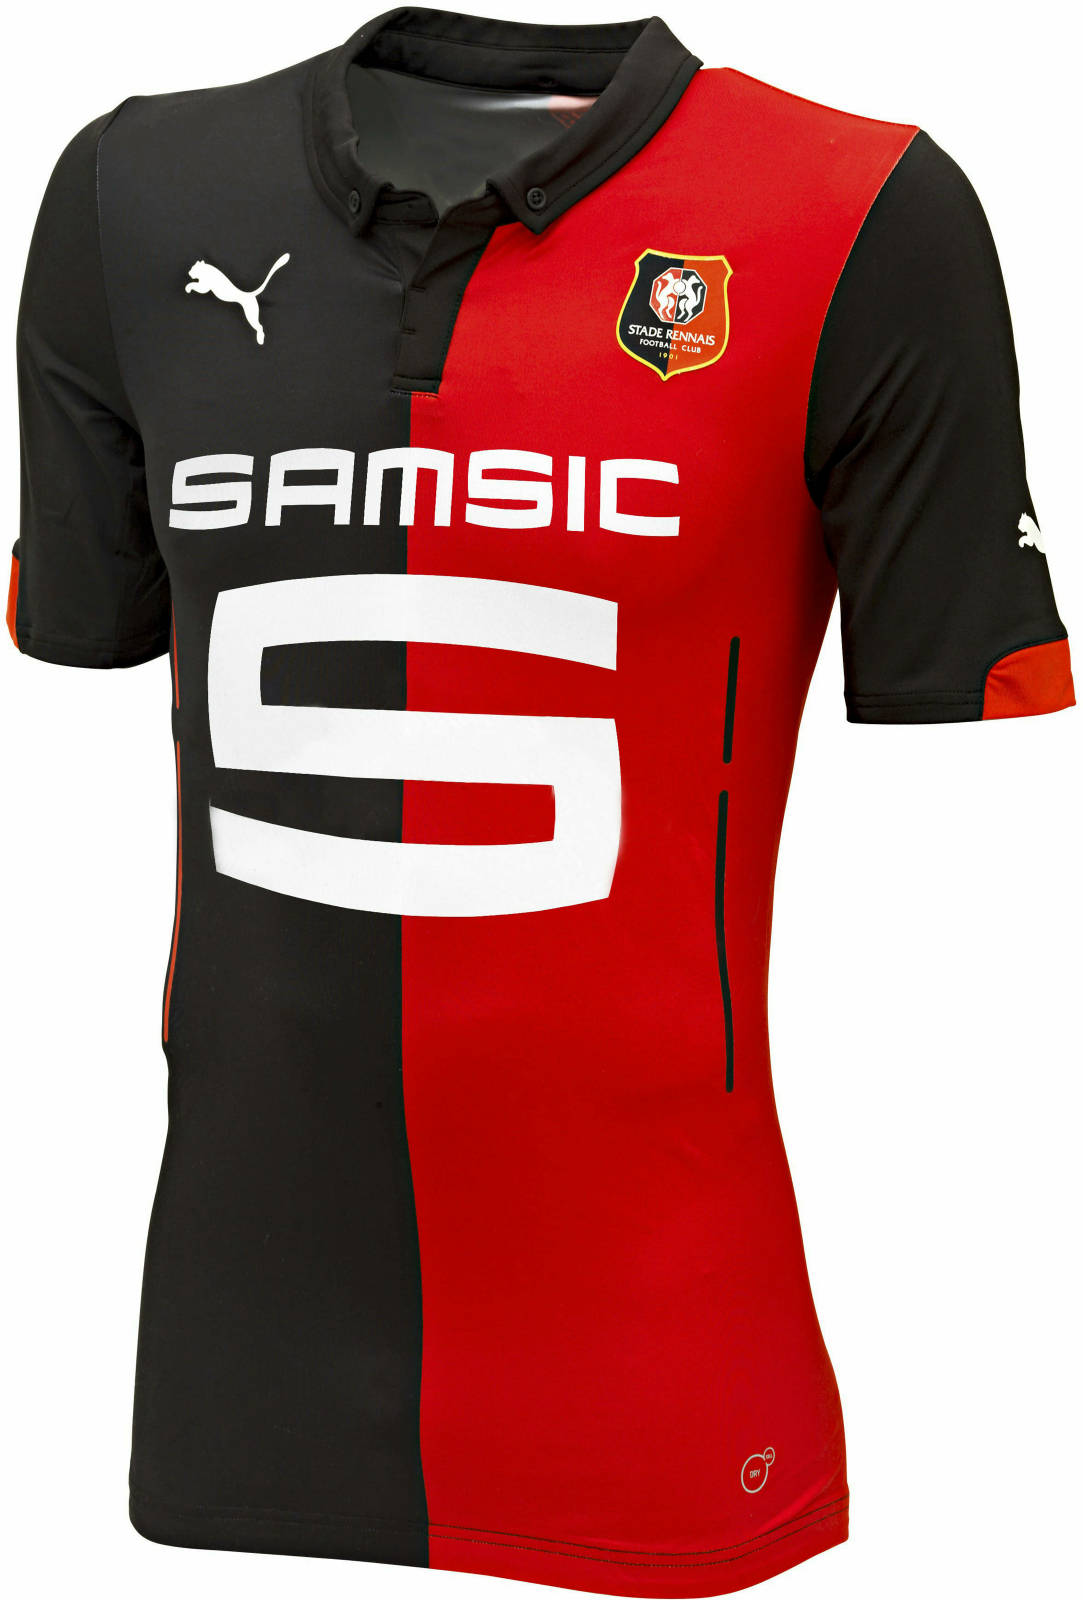 Stade rennais 14 15 kits released footy headlines